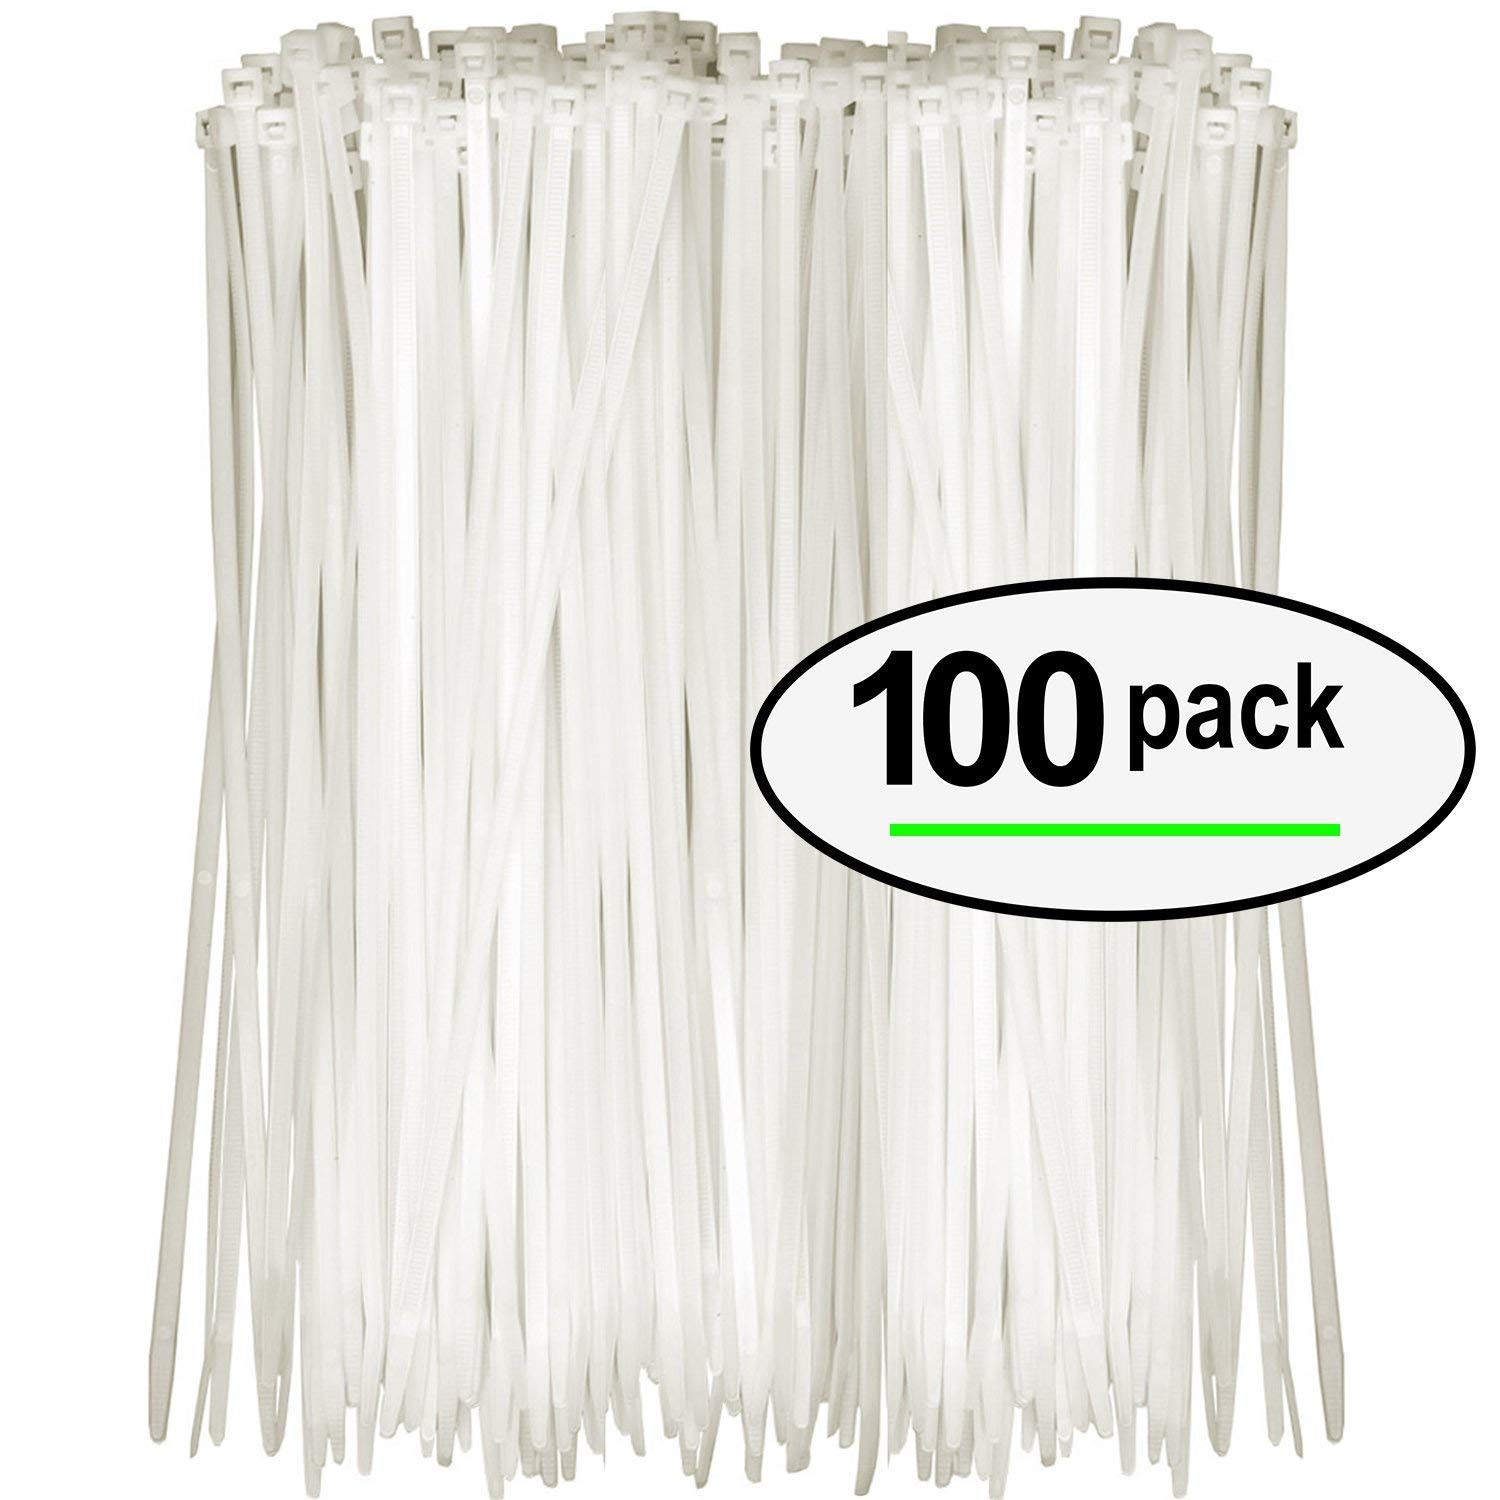 Tarvol Nylon Zip Ties Pack of 100 8 Inch with Self Locking Cable Ties White